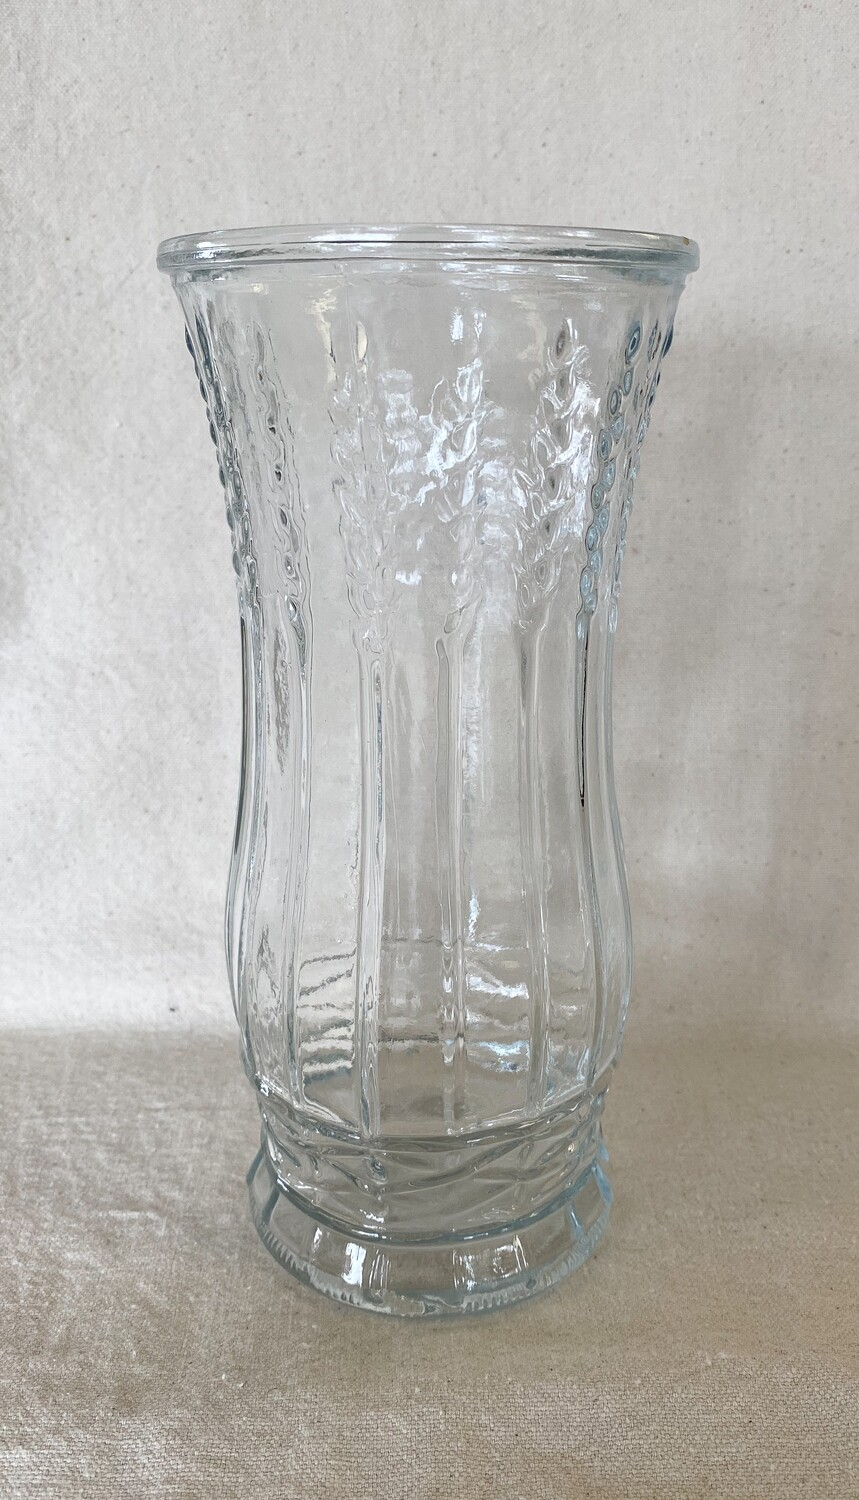 Brody Co Wheat Stalk Glass Vase